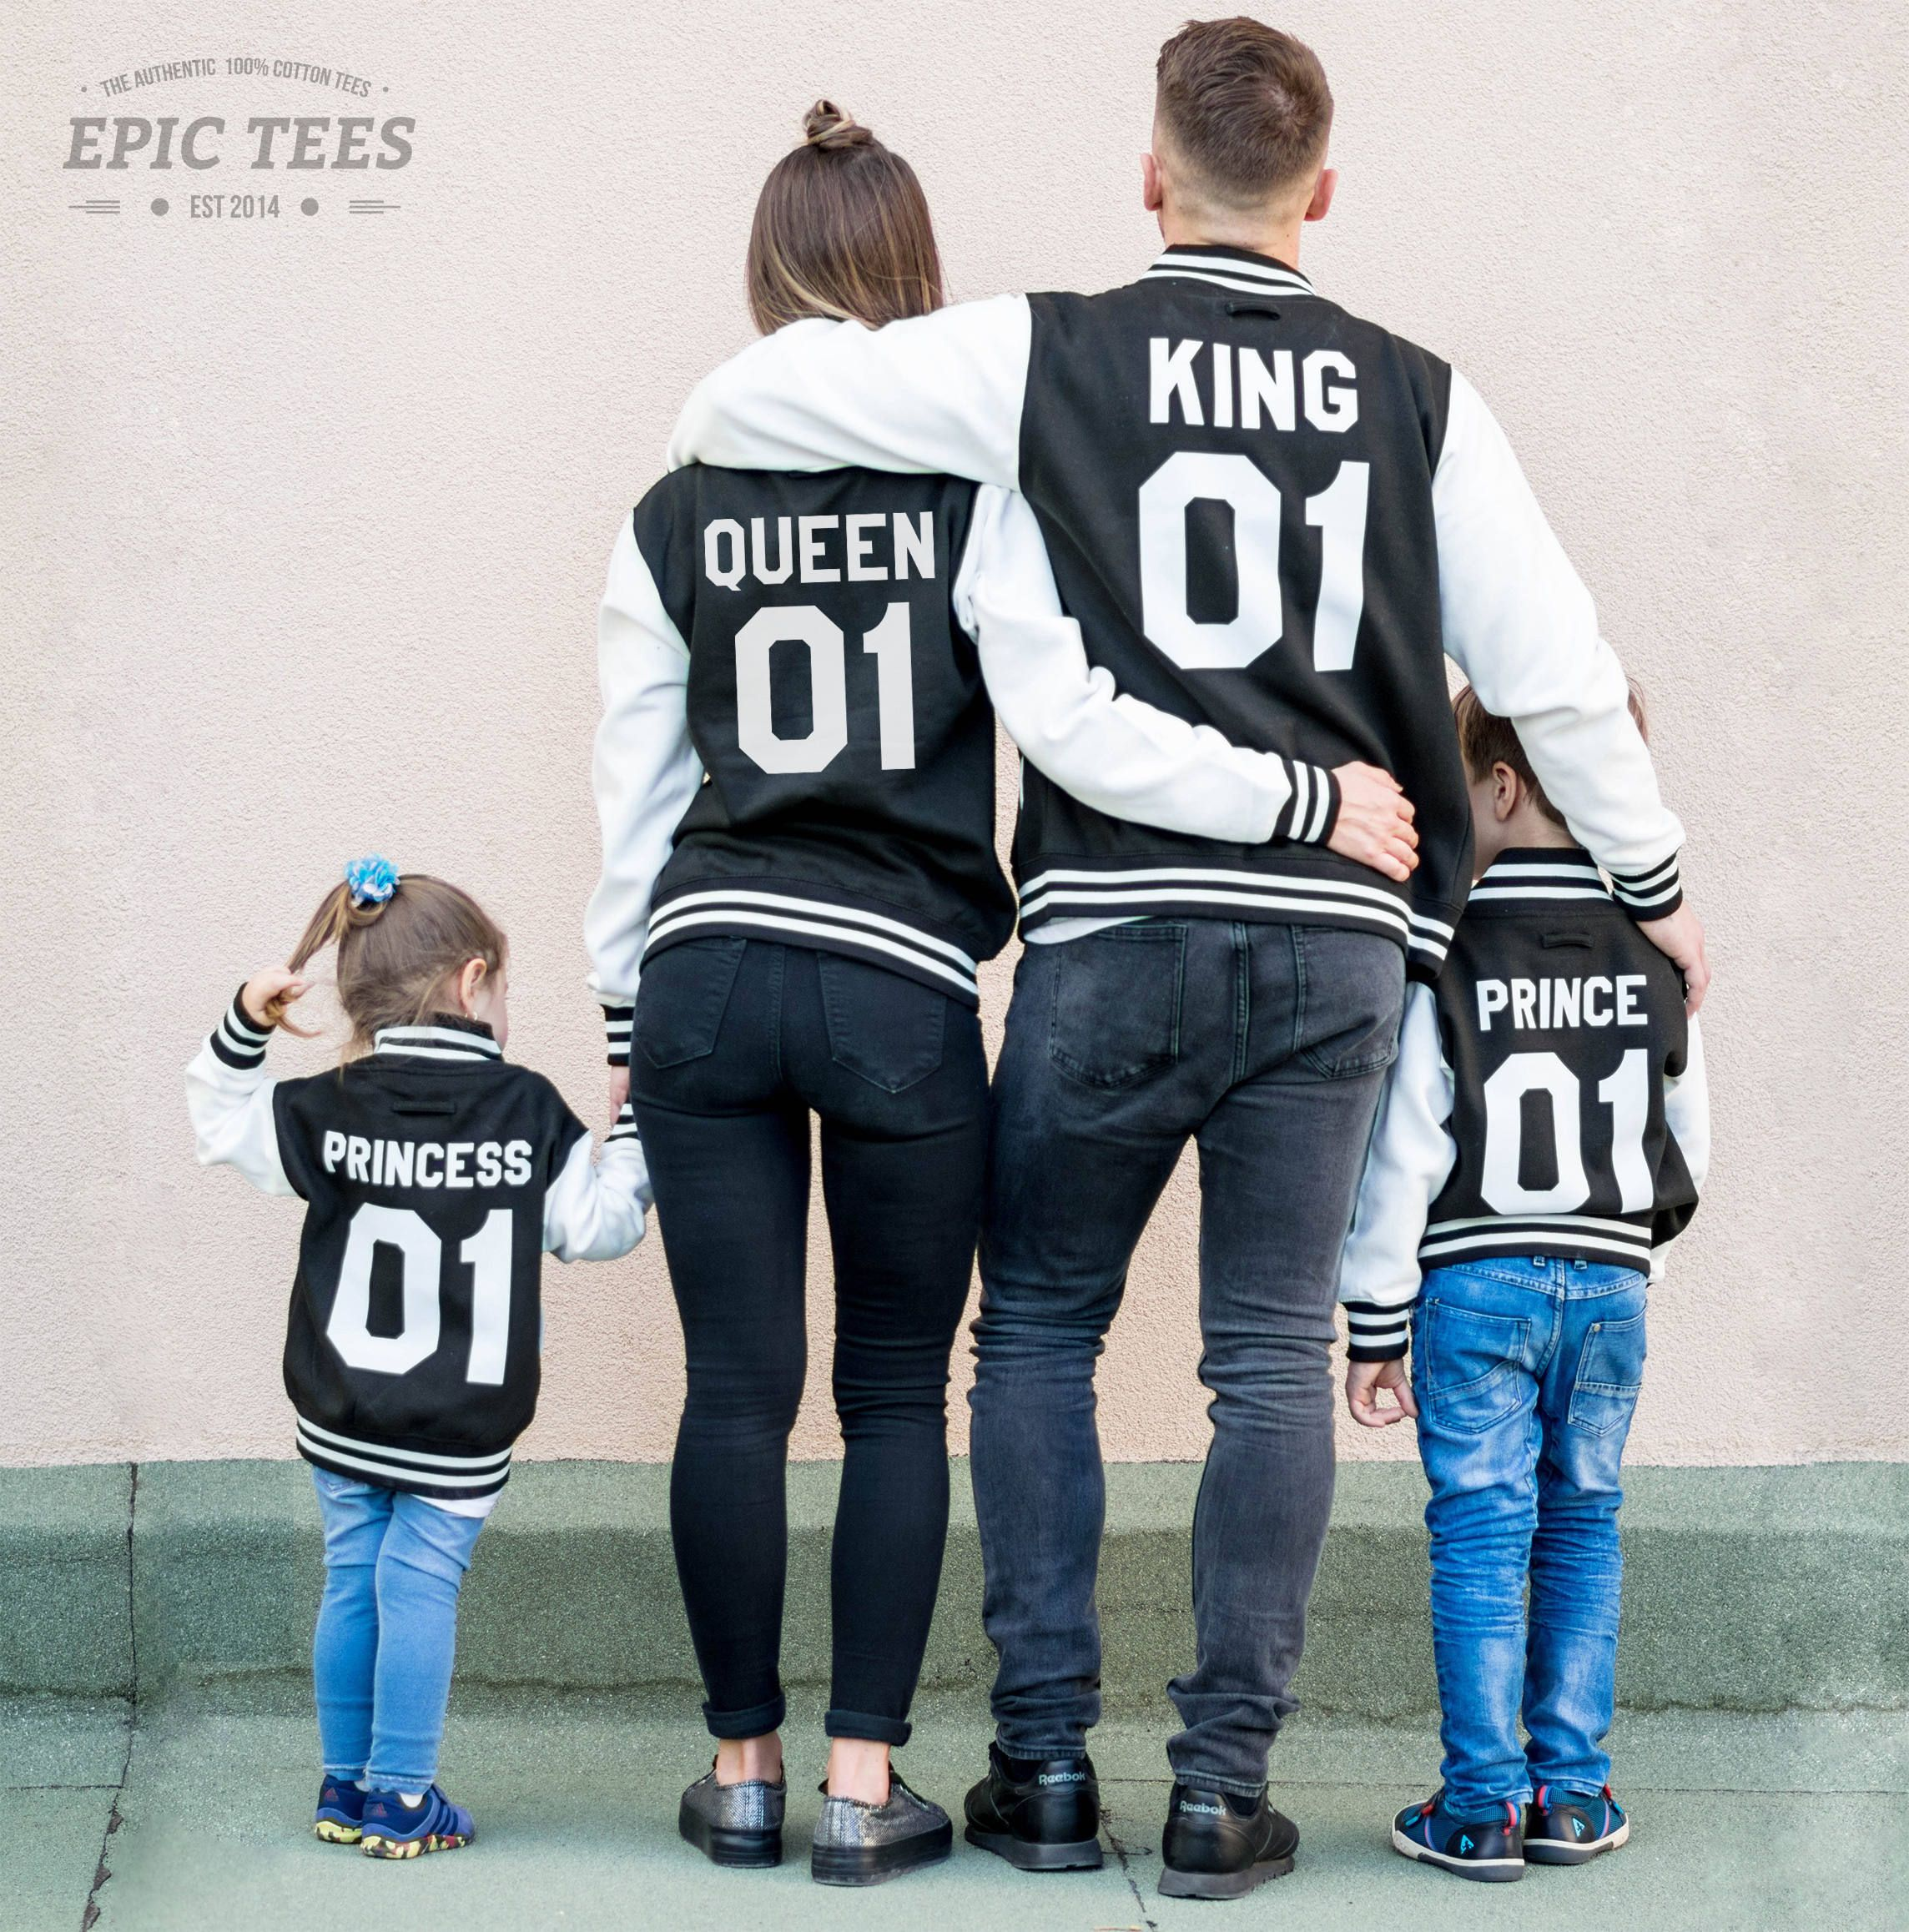 KING, Queen, Princess, and Prince Family Matching Sweatshirts